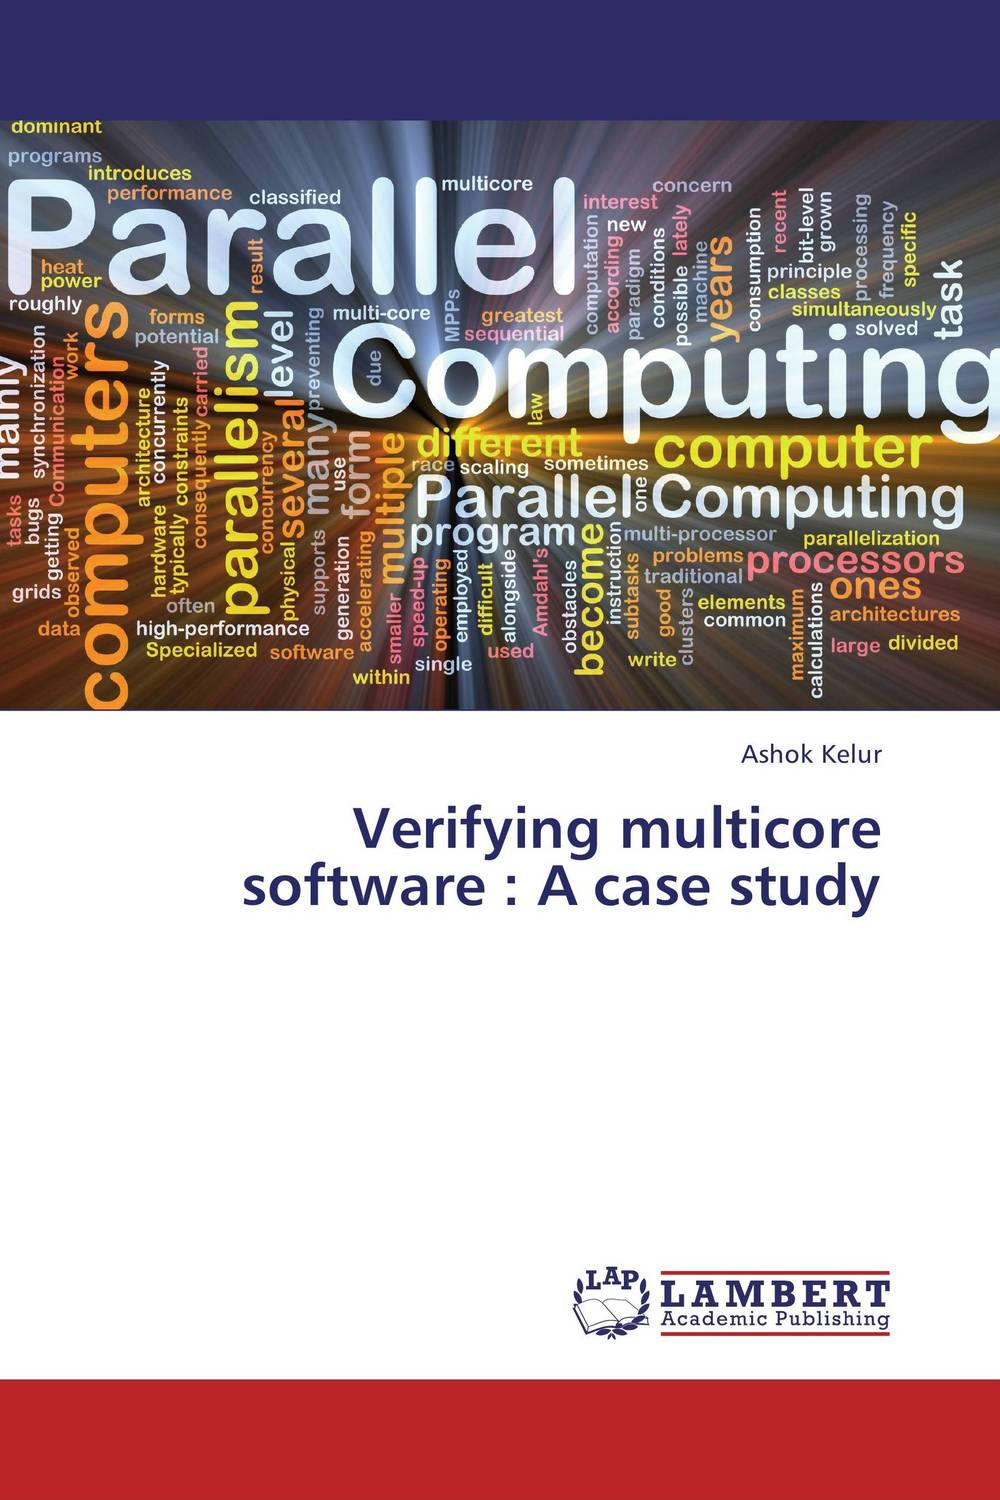 Verifying multicore software : A case study a software upgrades investment model